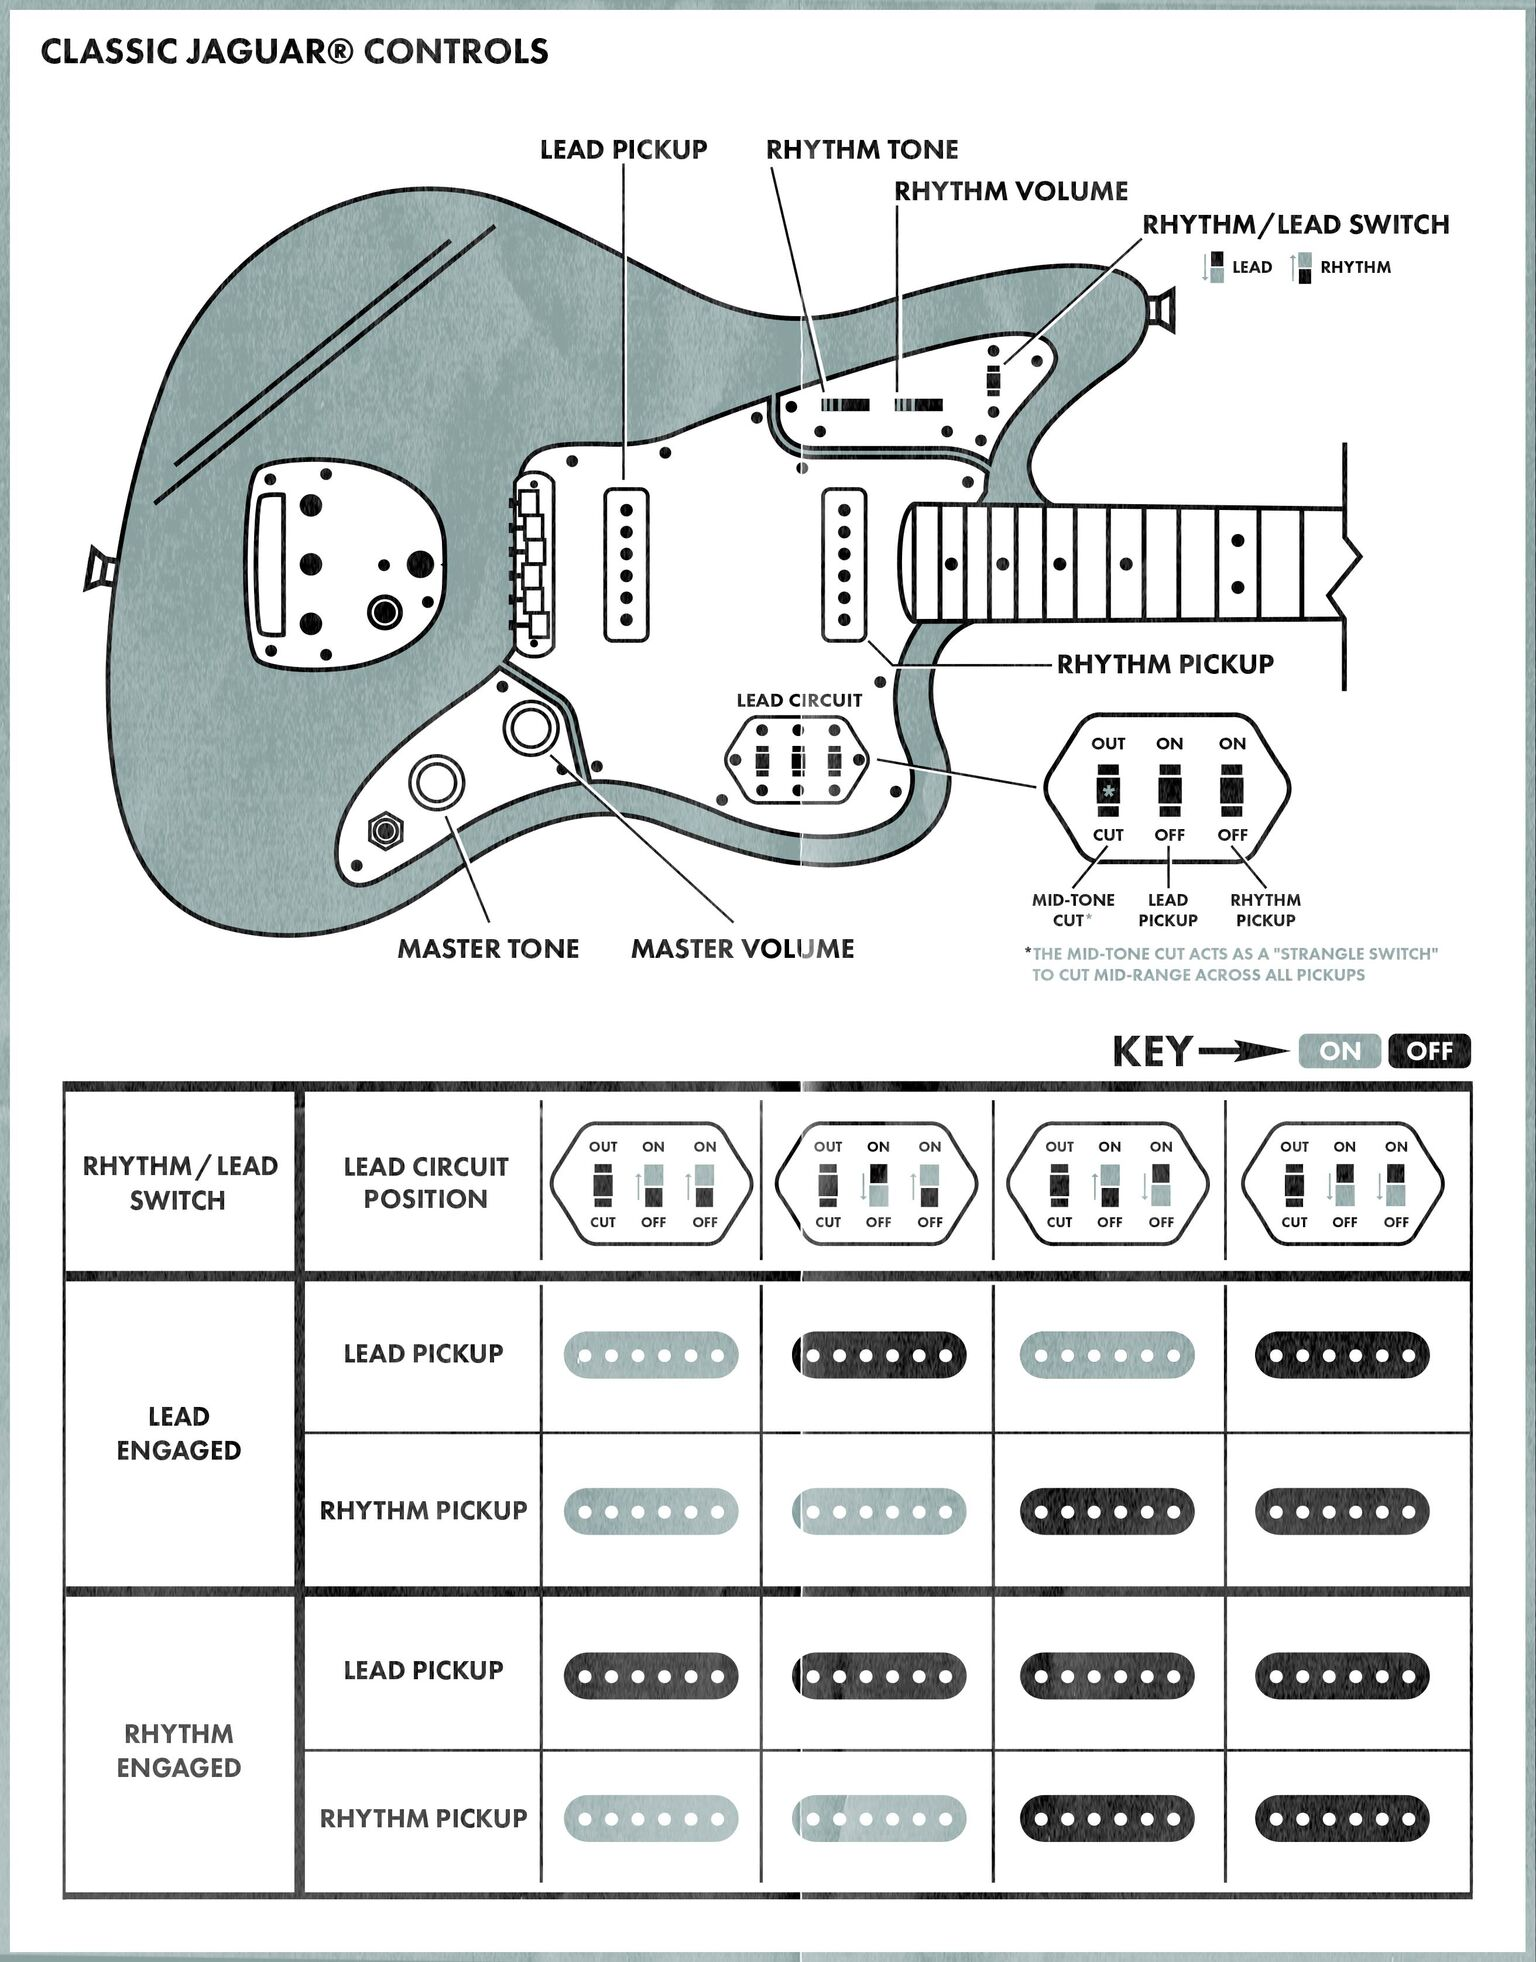 Jaguar Controls Explained Fender 3 Pickup Telecaster Wiring